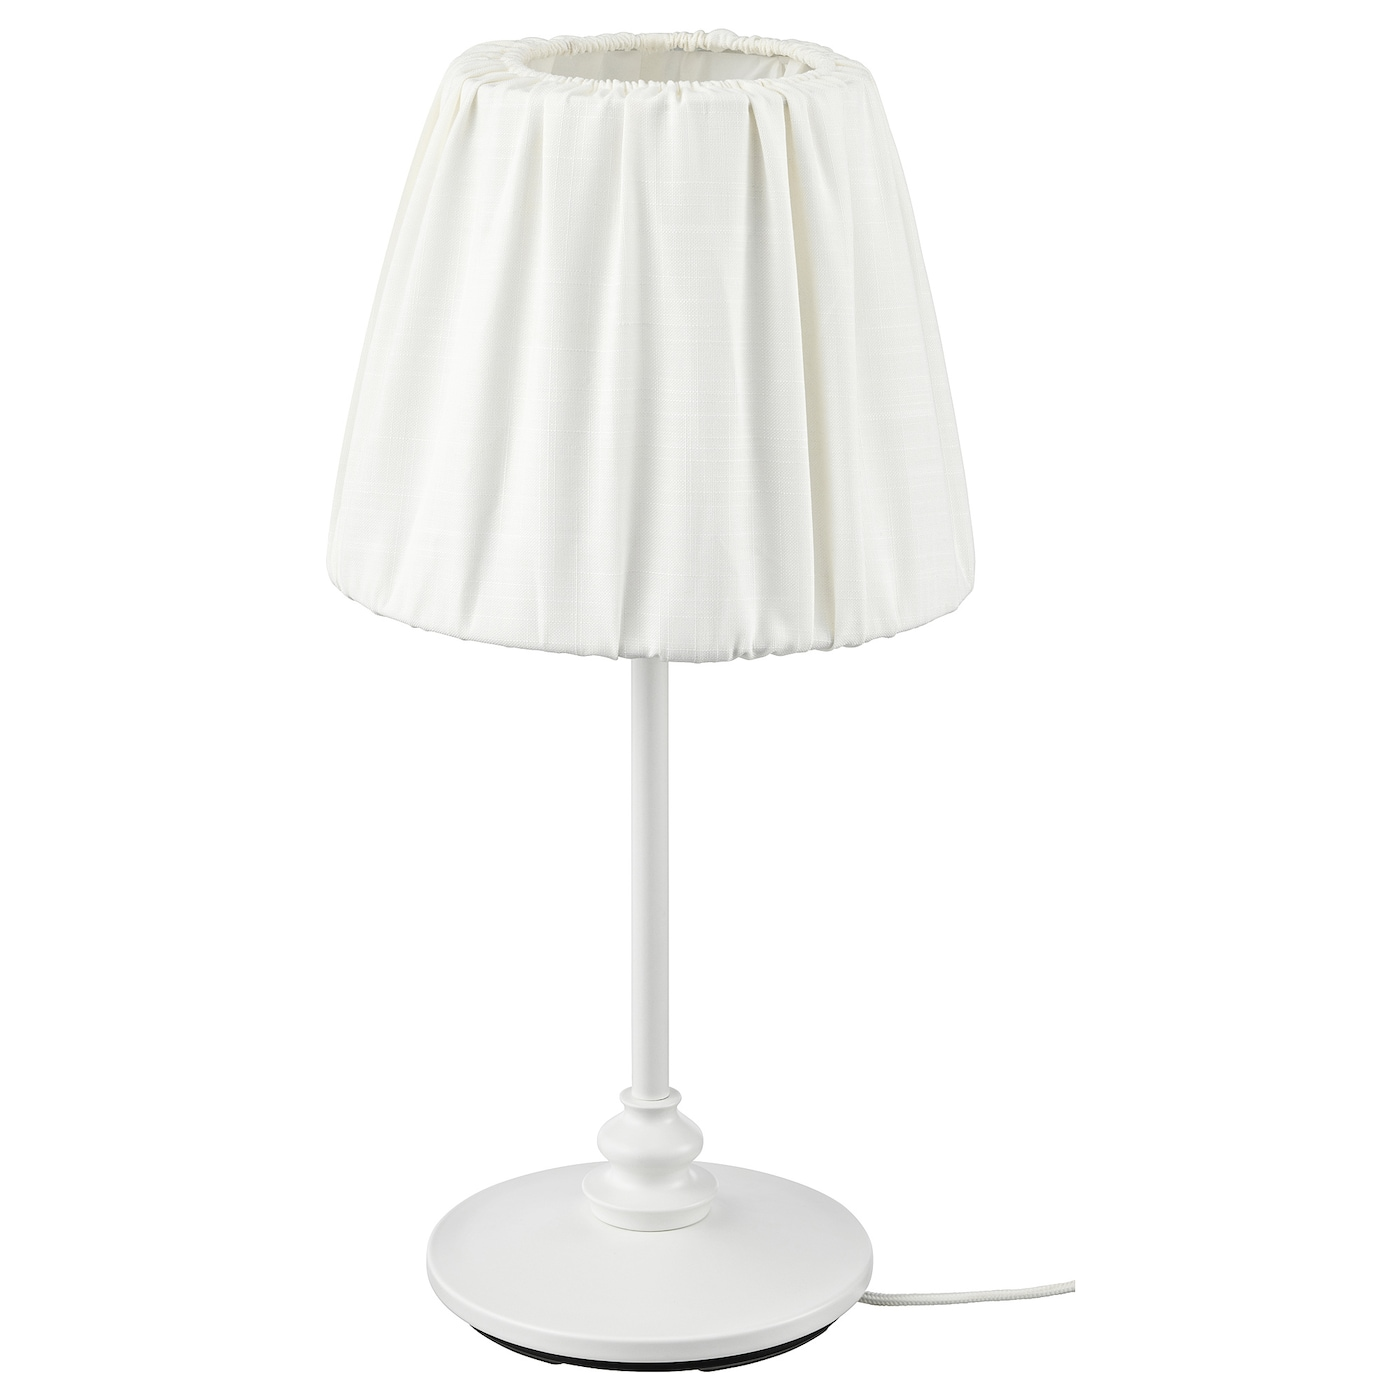 IKEA ÖSTERLO lampe de table